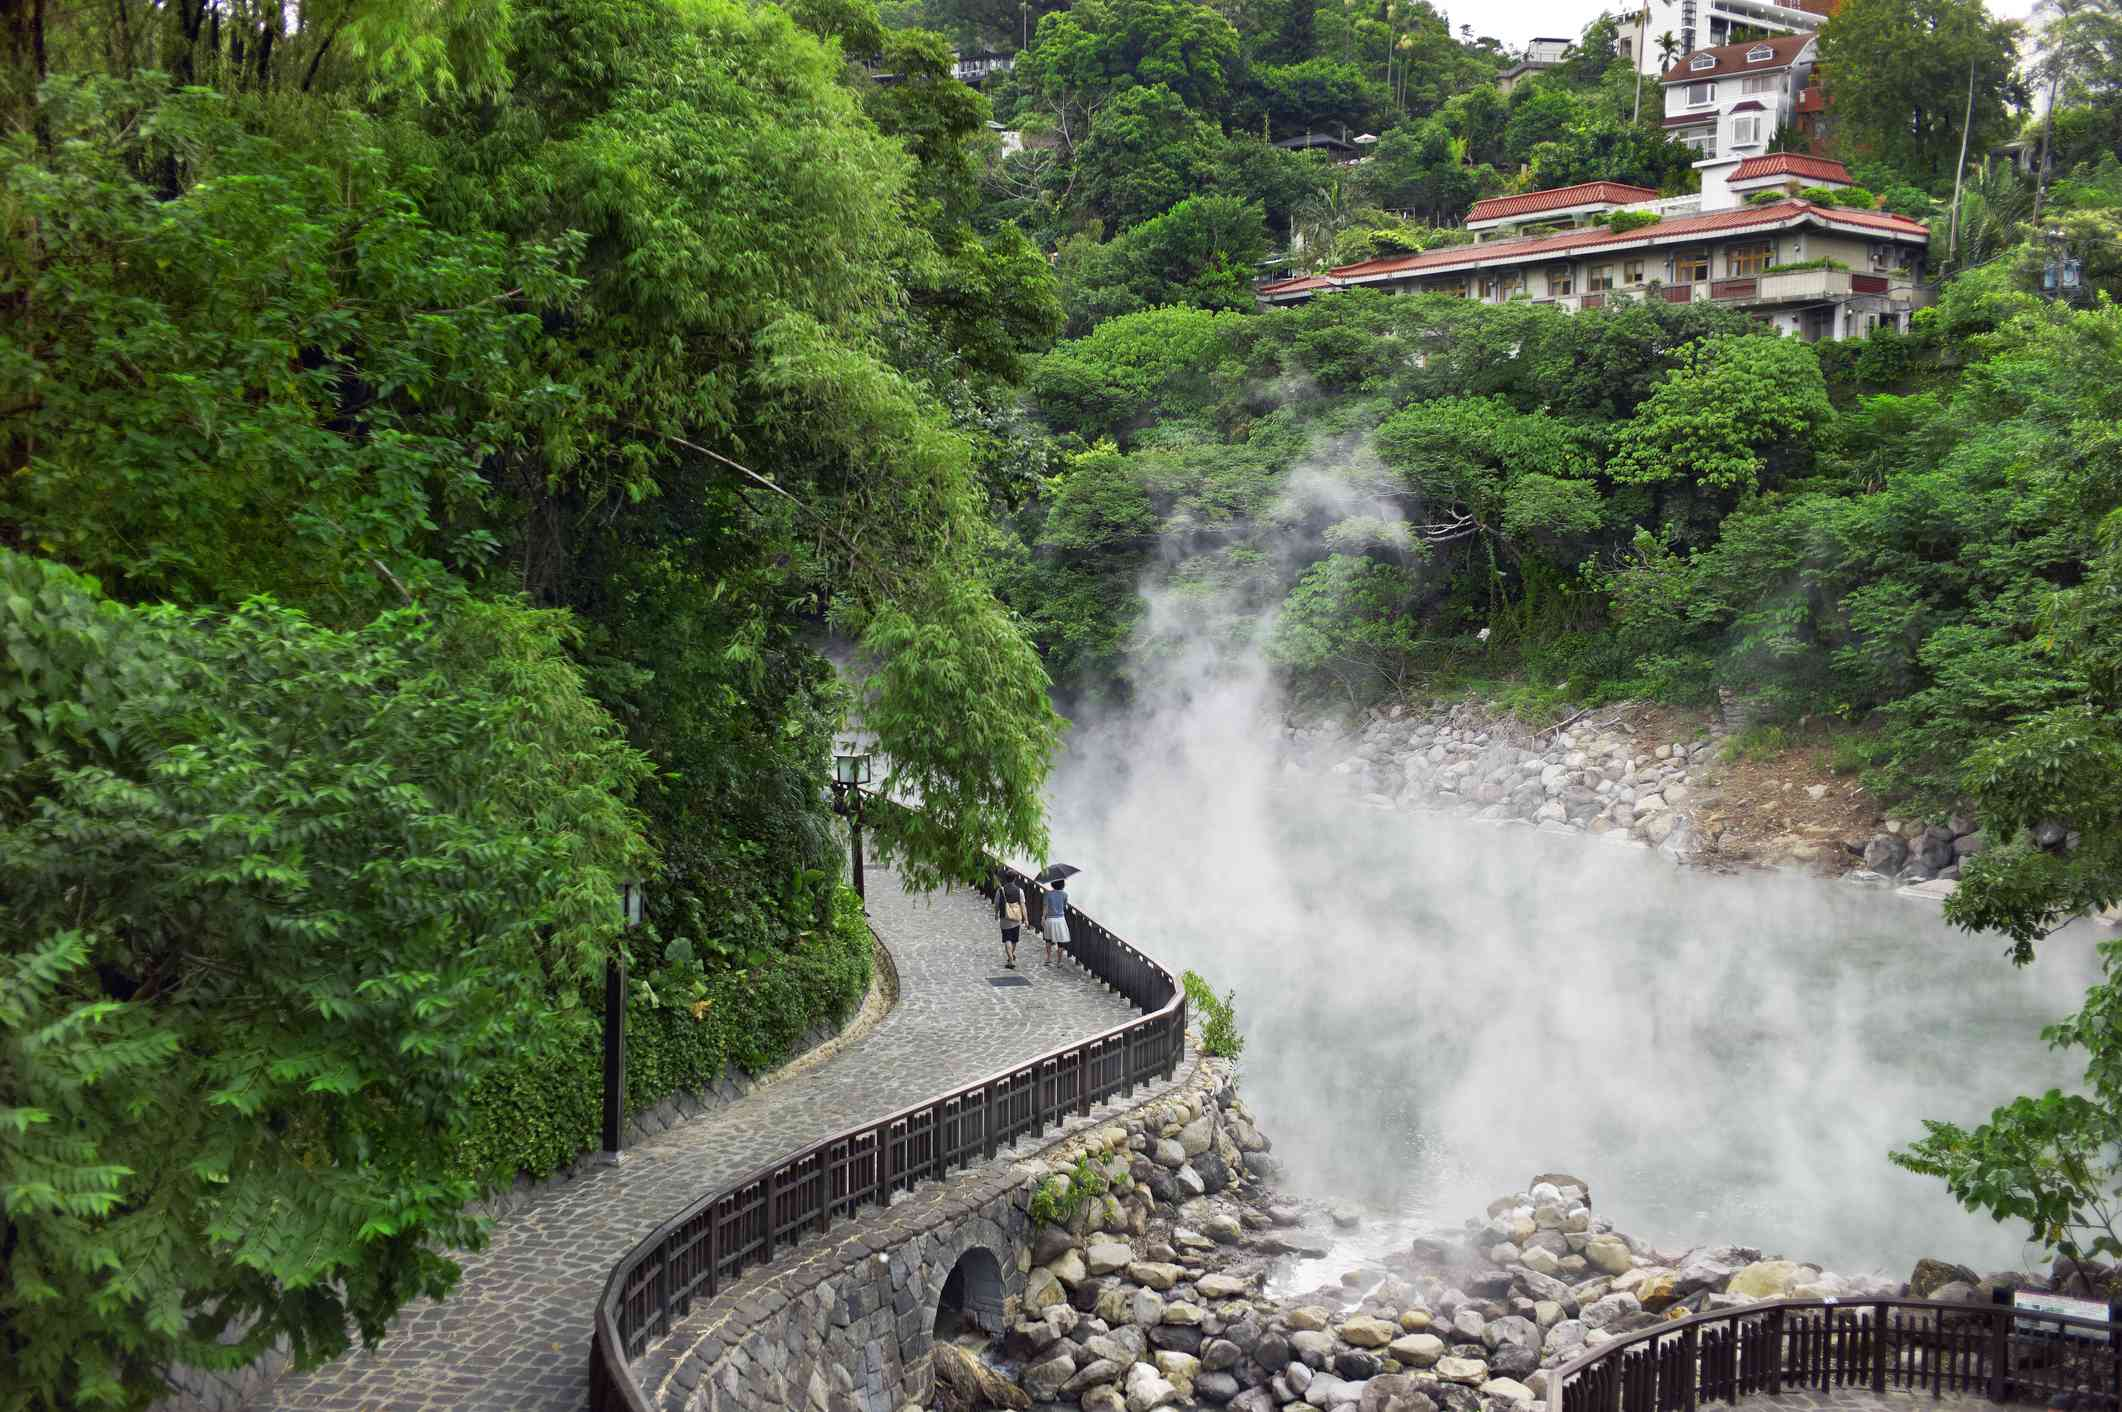 couple waking up a curving path next to a hot spring in Taipei's Beitou District